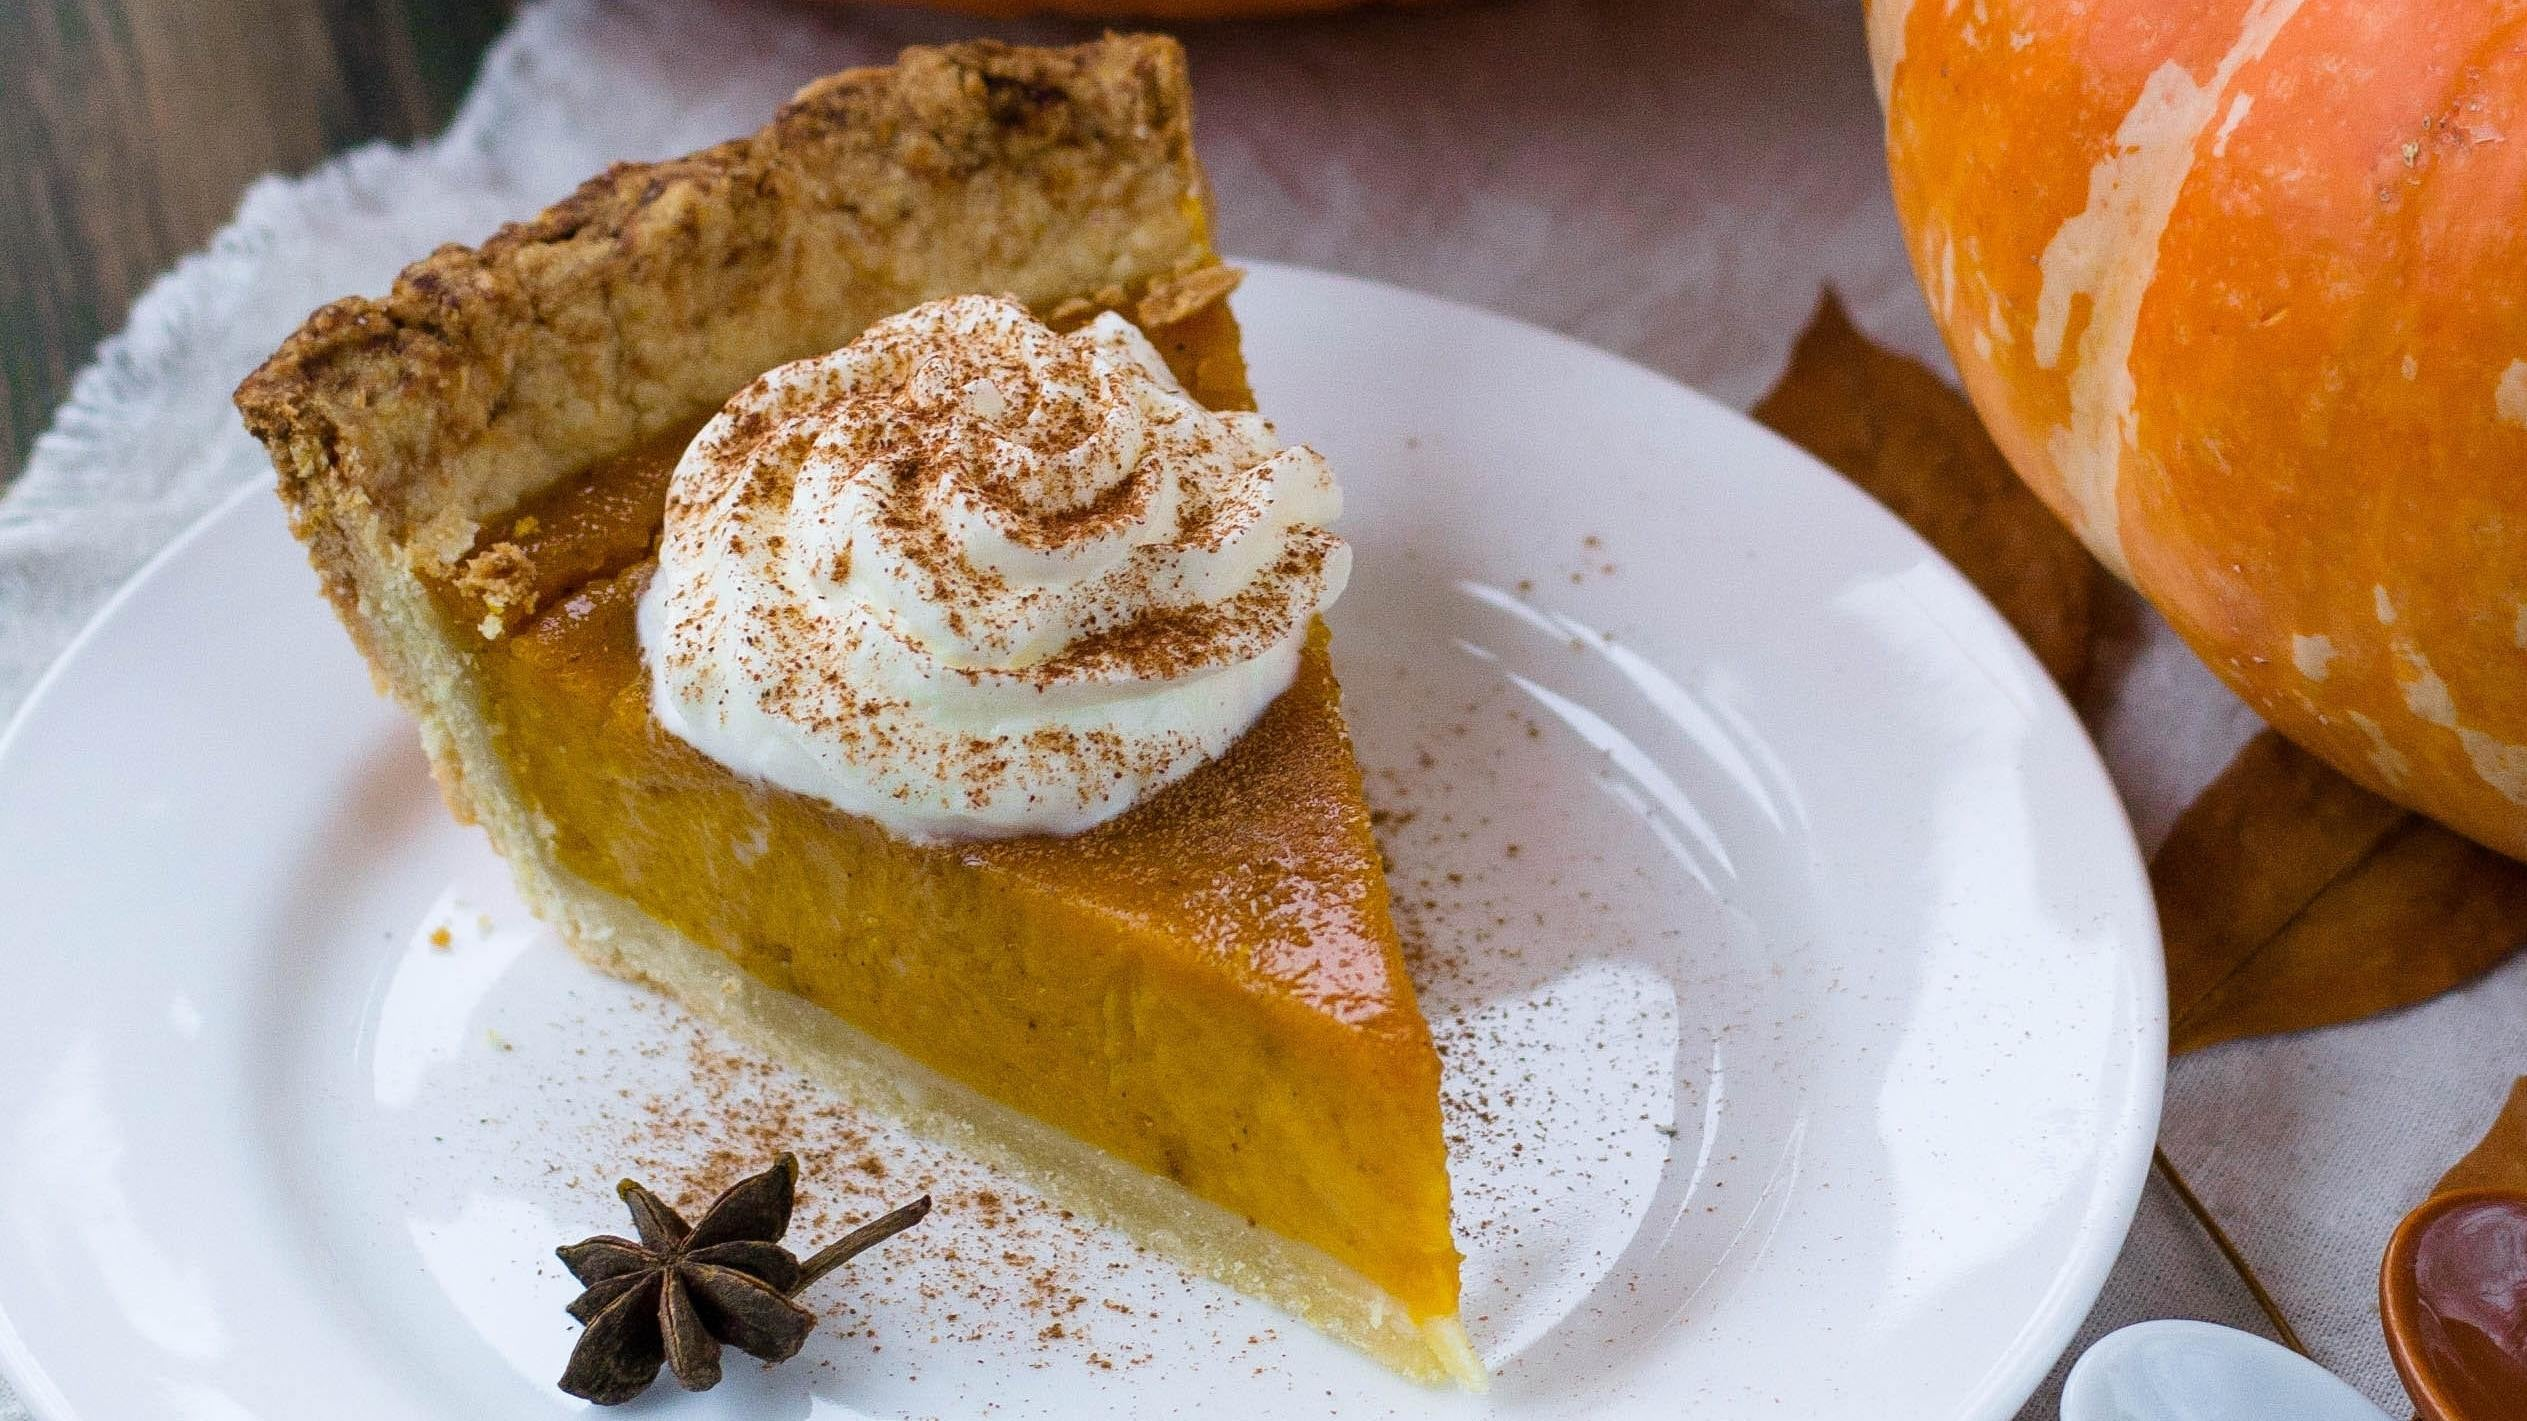 Common Custard Pie Mistakes And How To Avoid Them